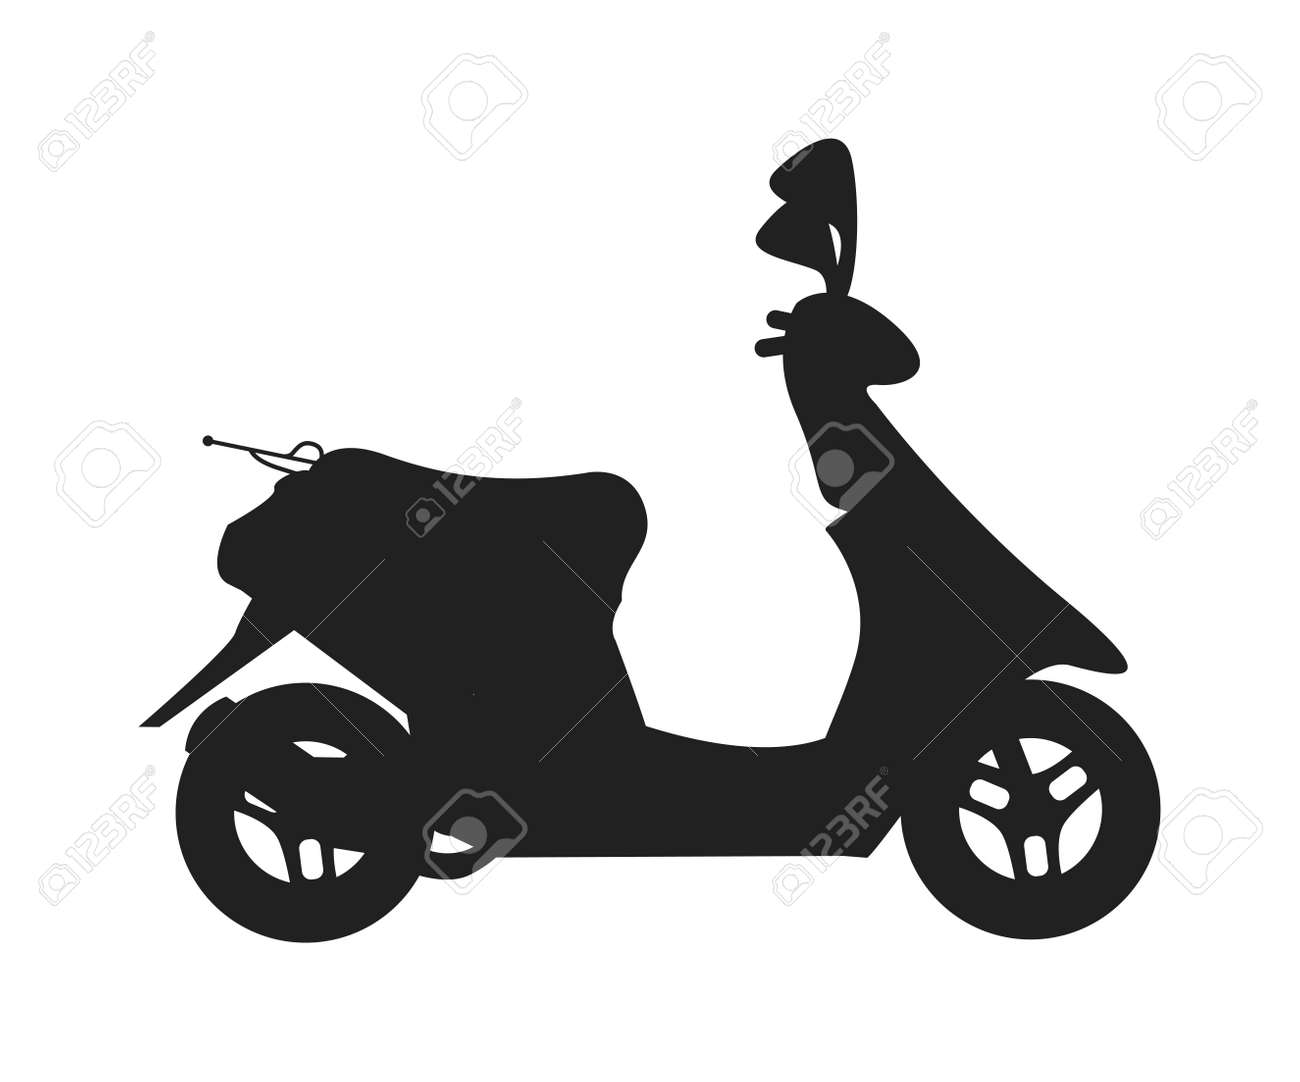 1d85d55127 Scooter silhouette symbol and scooter cartoon icon vector. Vector modern  creative flat design illustration featuring